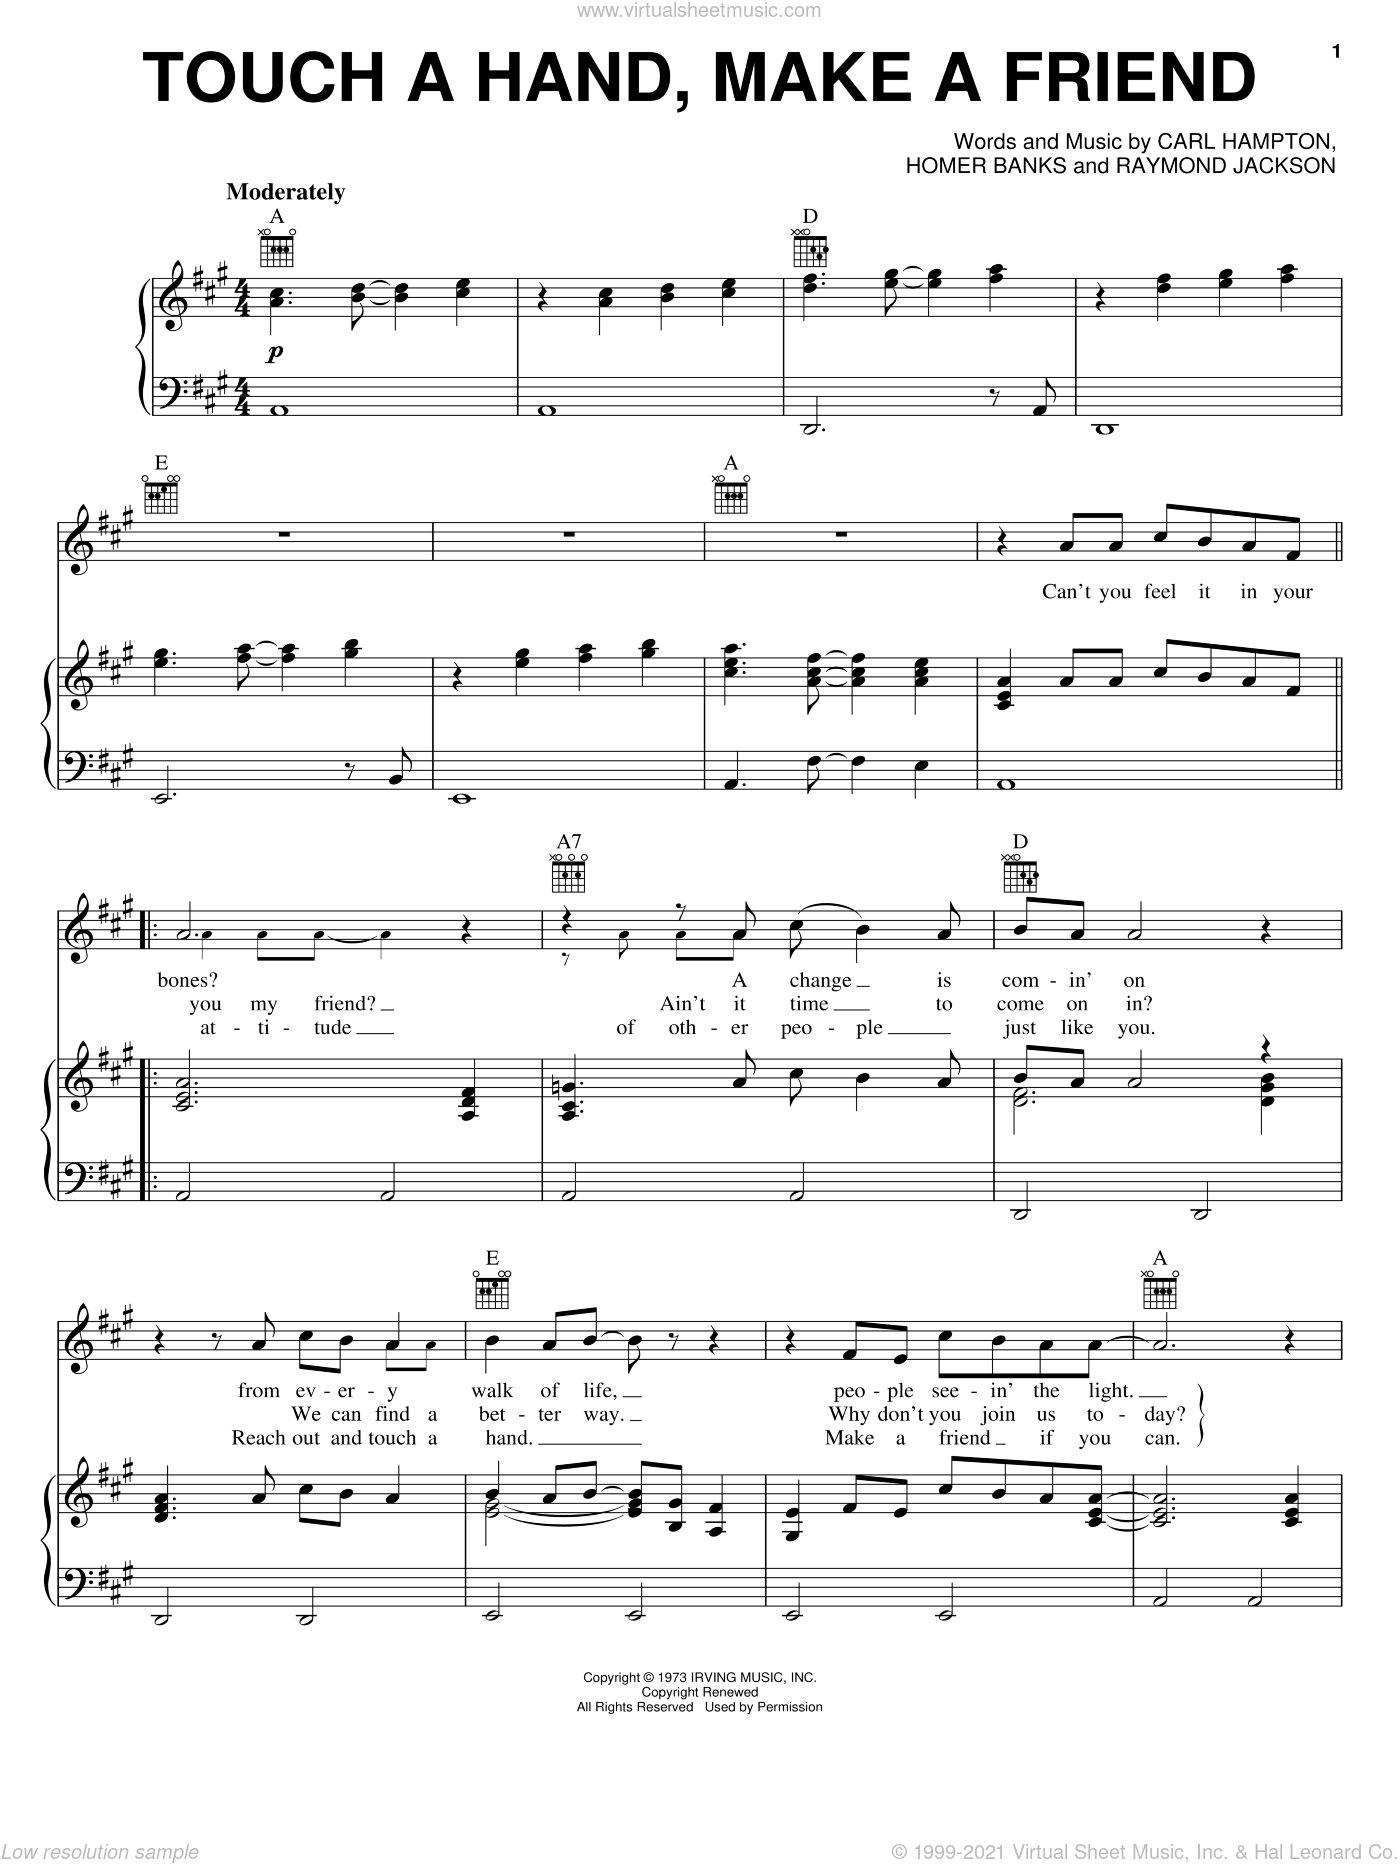 Touch A Hand, Make A Friend sheet music for voice, piano or guitar by Raymond Jackson